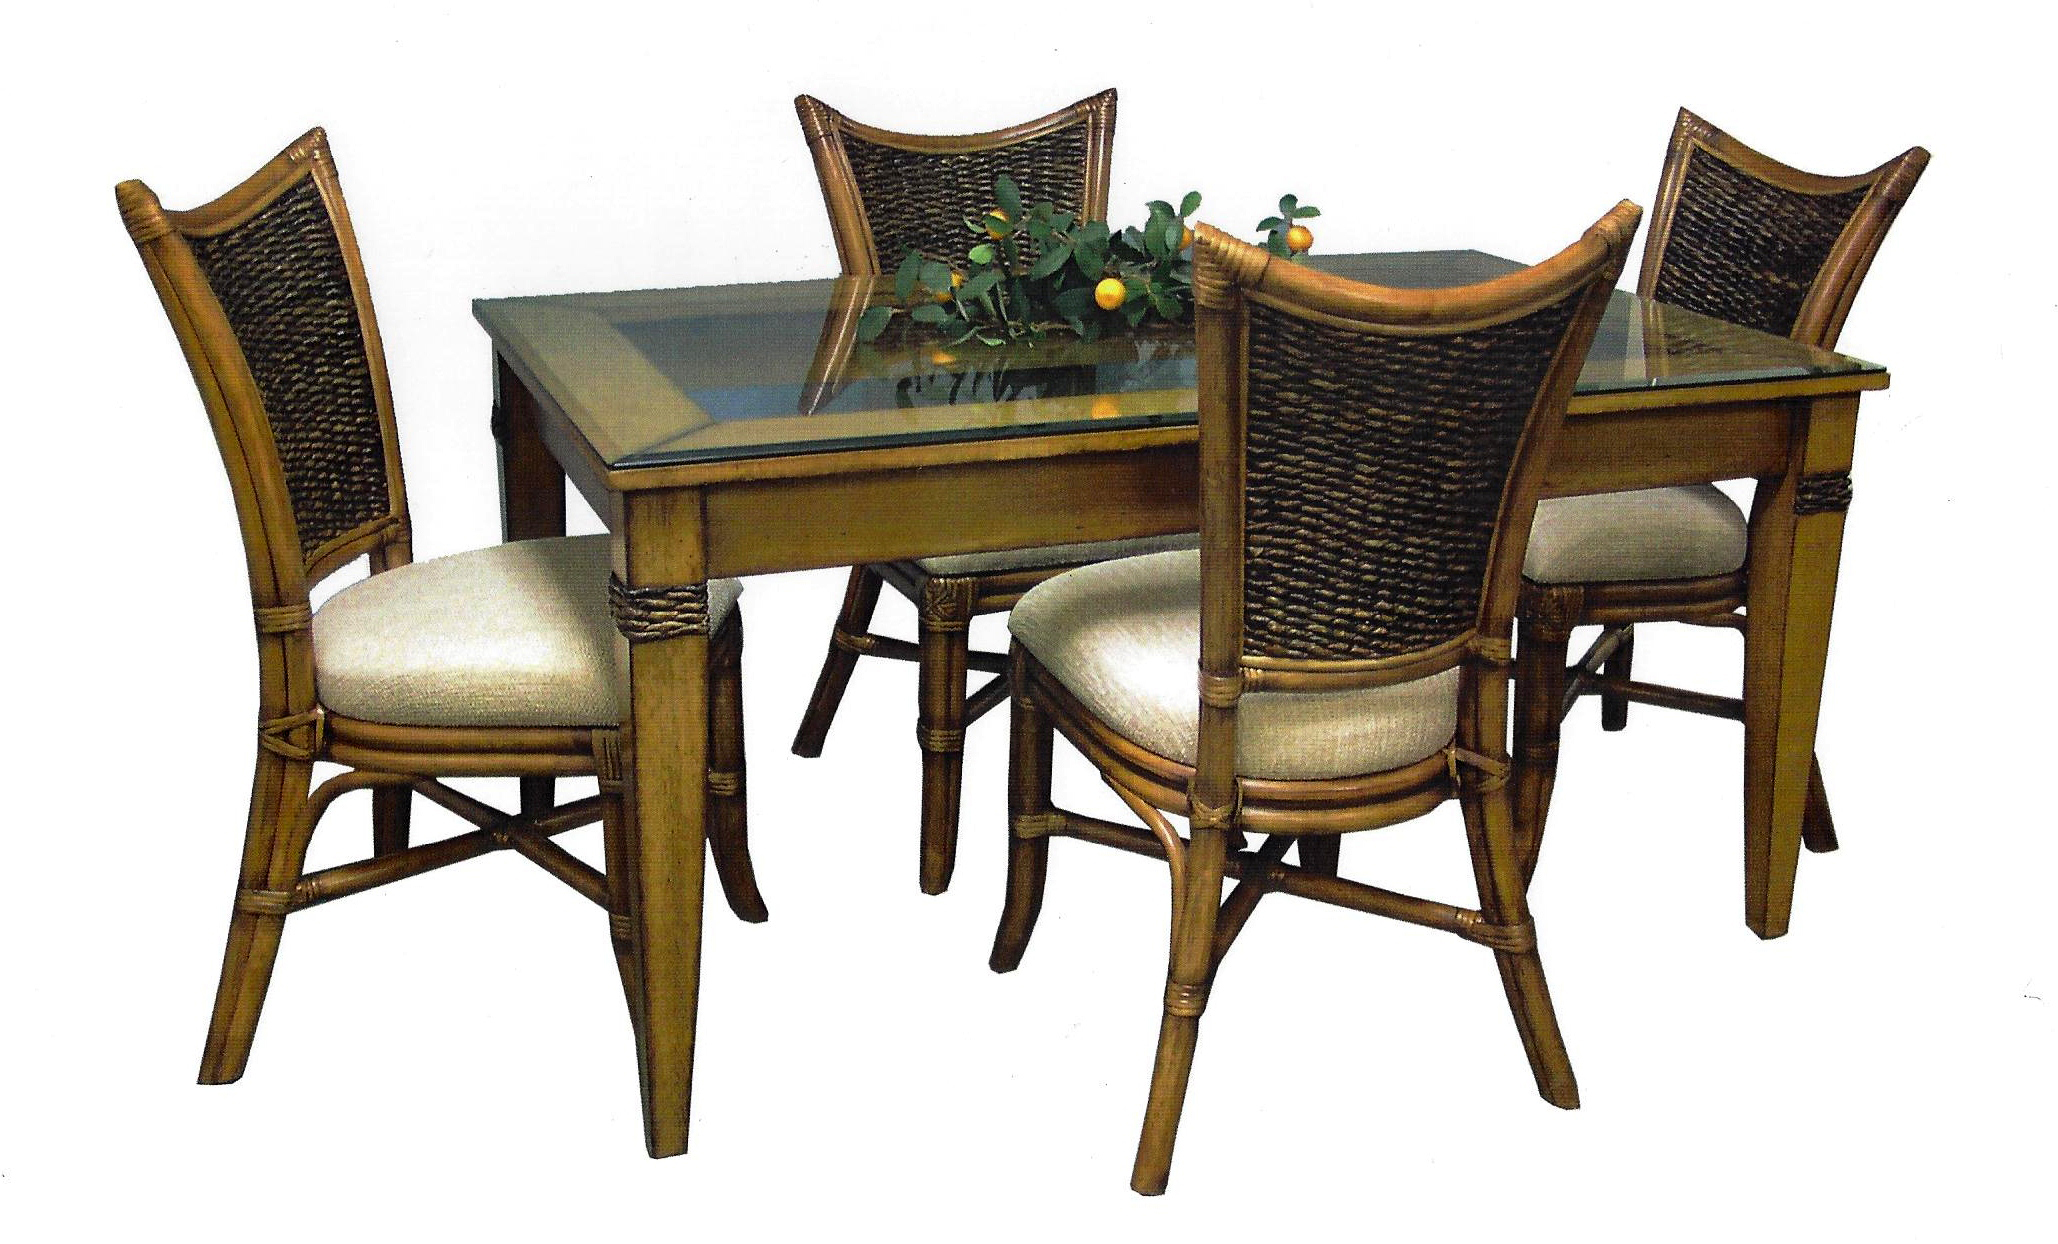 Dining Room Items||||Tables, Chairs, Barstools, Bars, China Cabinets, Buffets, Servers, Bakers Racks